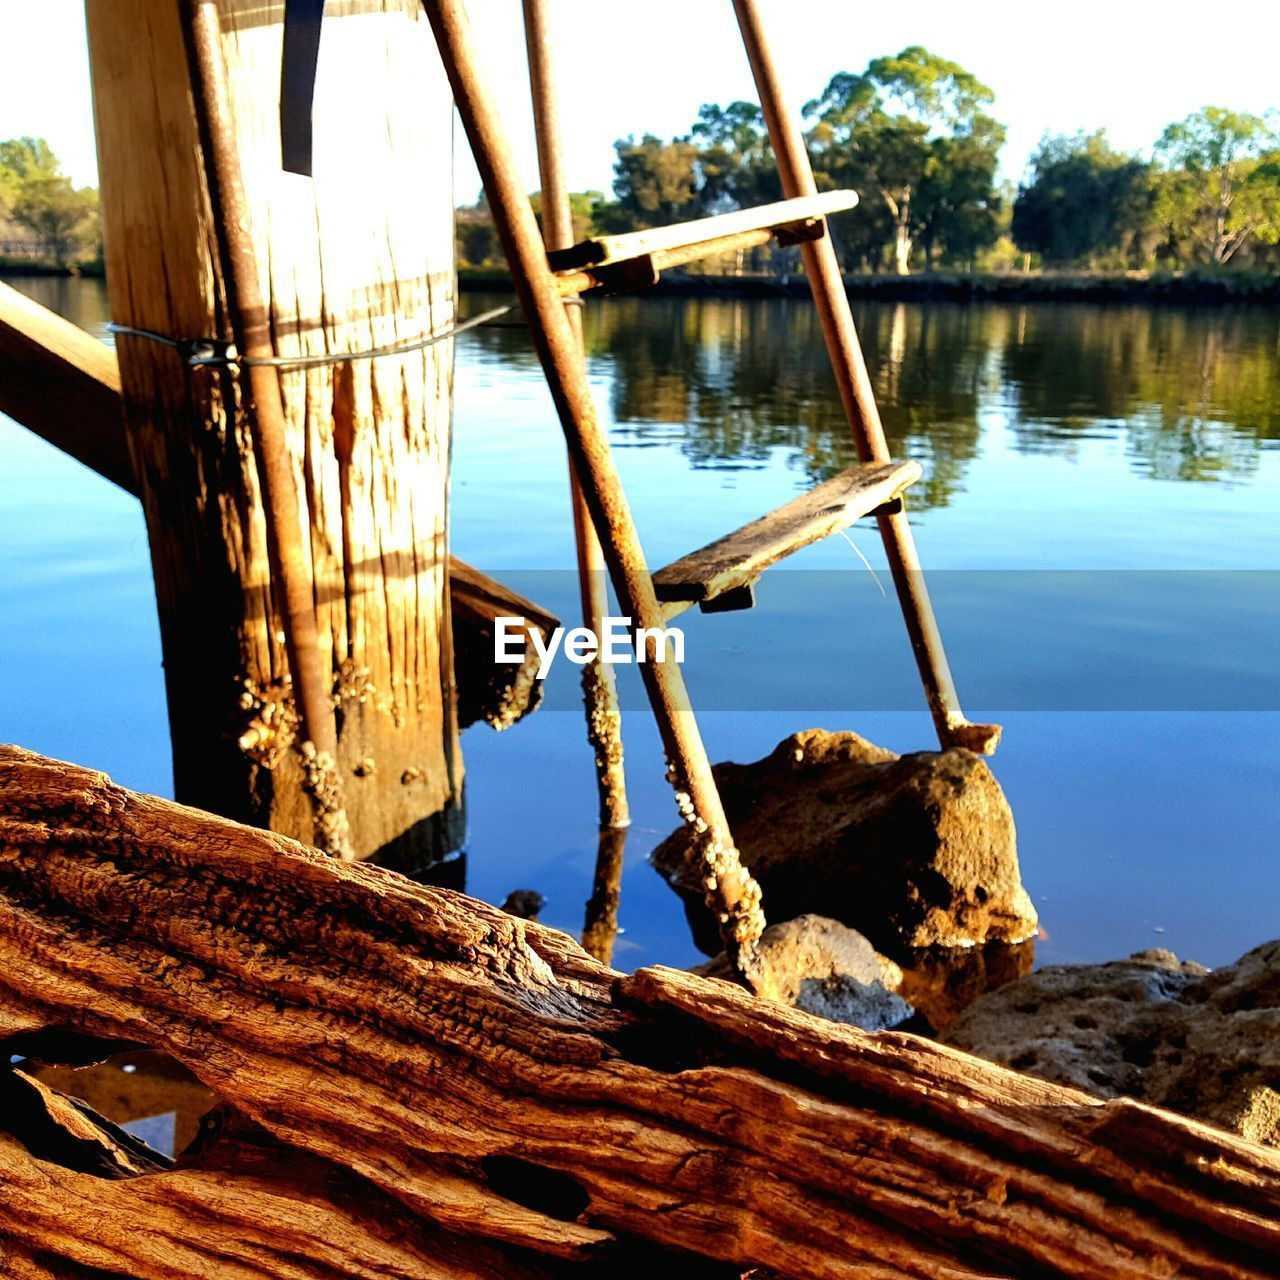 water, wood - material, no people, day, outdoors, nature, lake, nautical vessel, tree, sky, close-up